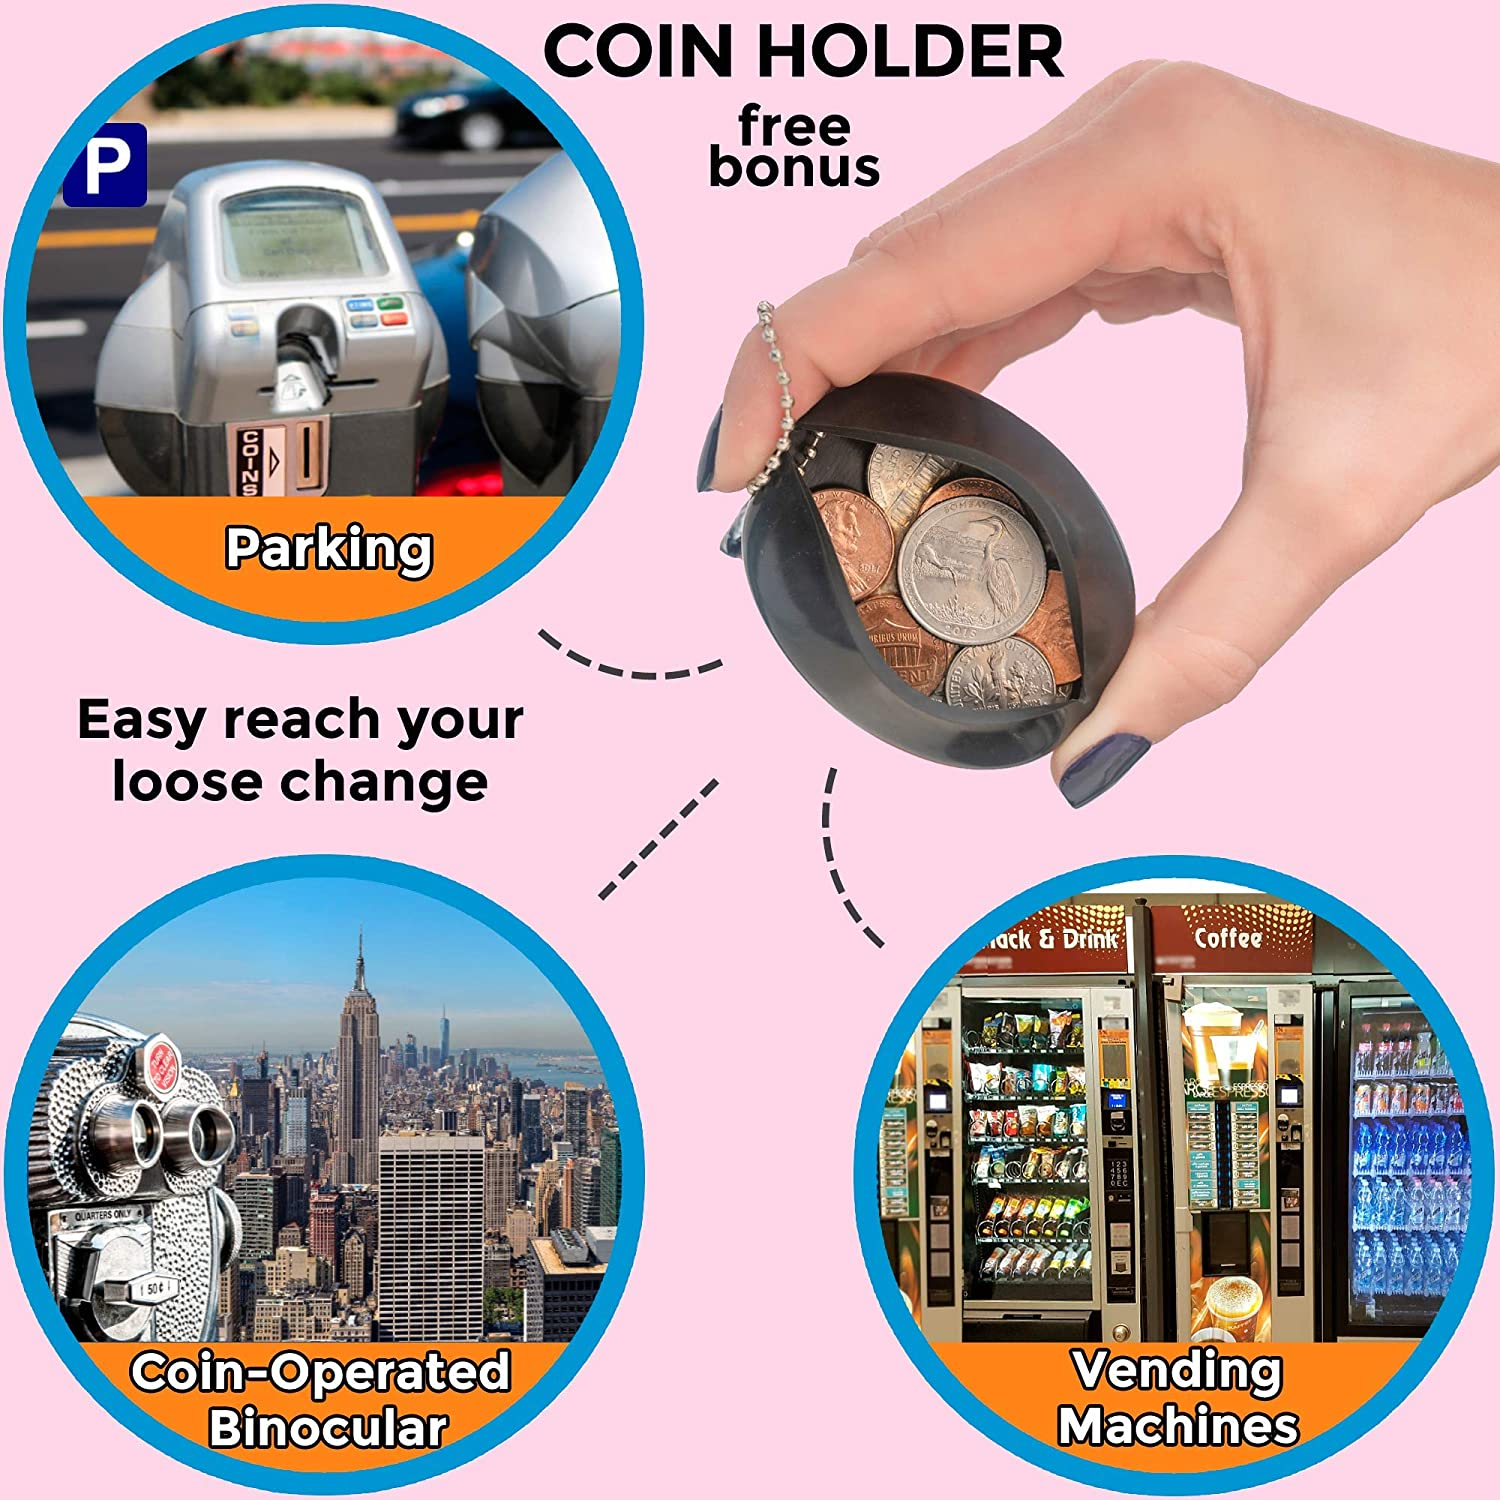 Carbon Fiber Key Organizer Keychain -Easy Assembly -with Fob Car Loop UP to 22 Keys for House Coin Holder Blue SIM /& Bottle Opener Mailbox Locks Carabiner Compact Smart Key Holder Organizer